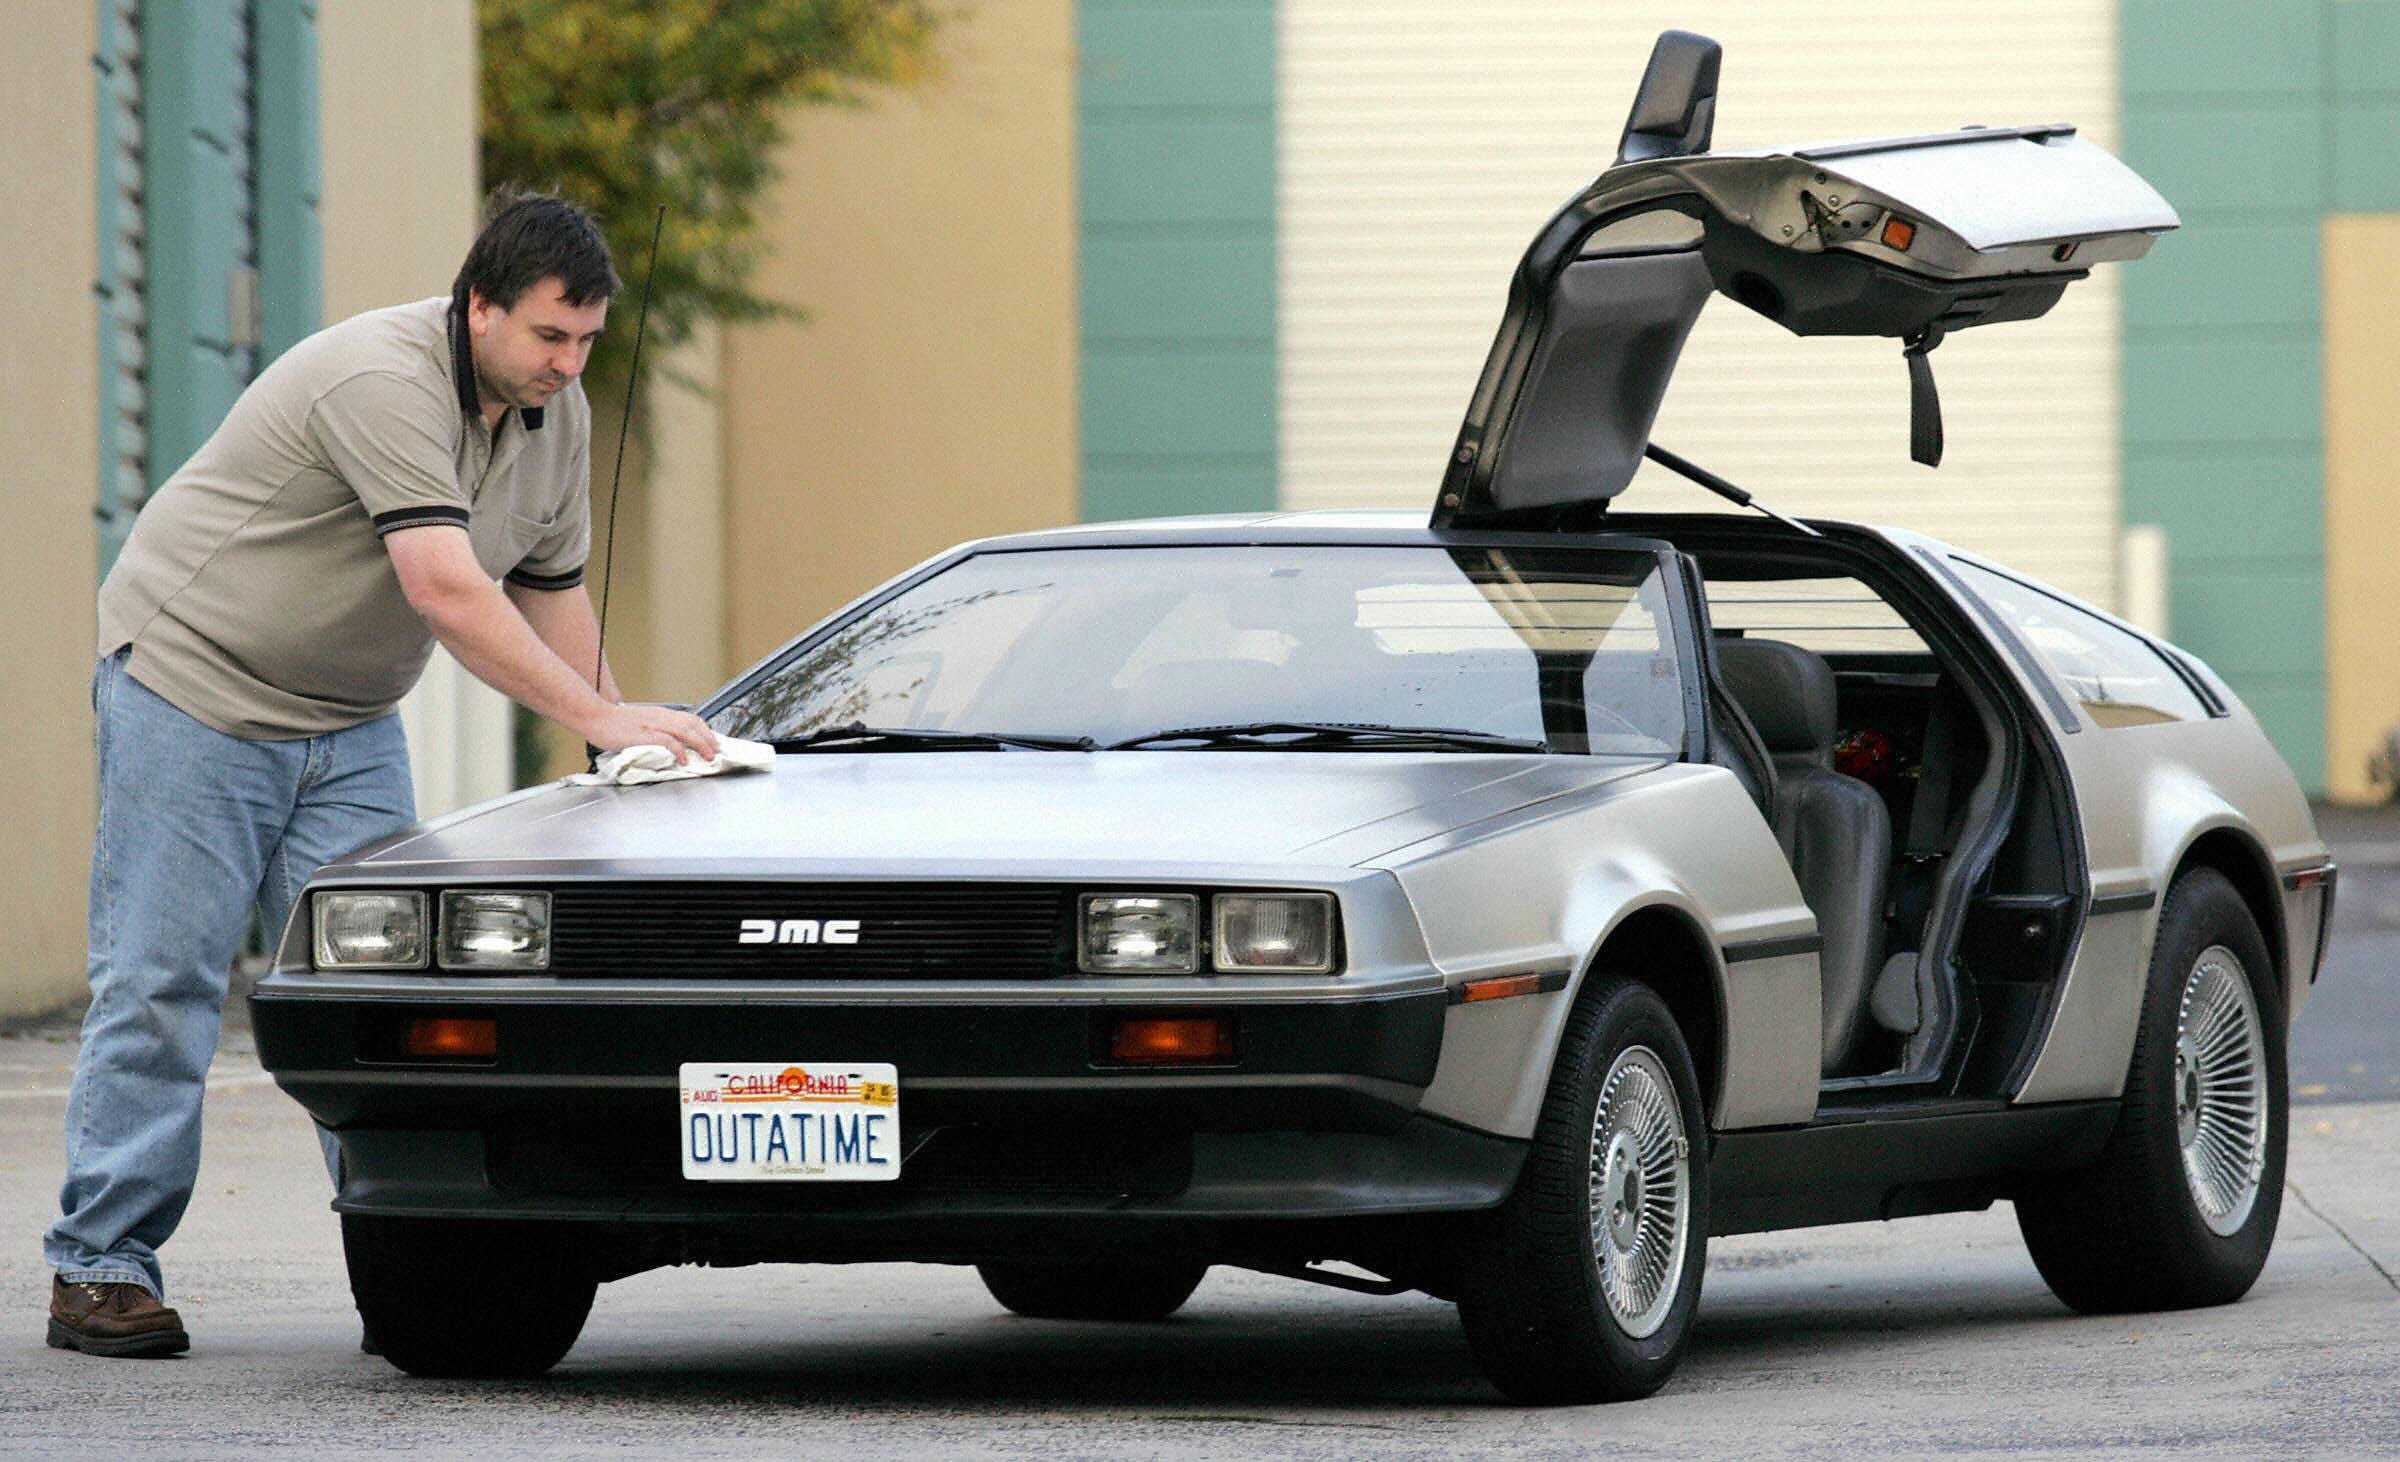 Michael J. Fox considers the car from Back to the Future the worst in the world 07/20/2015 44